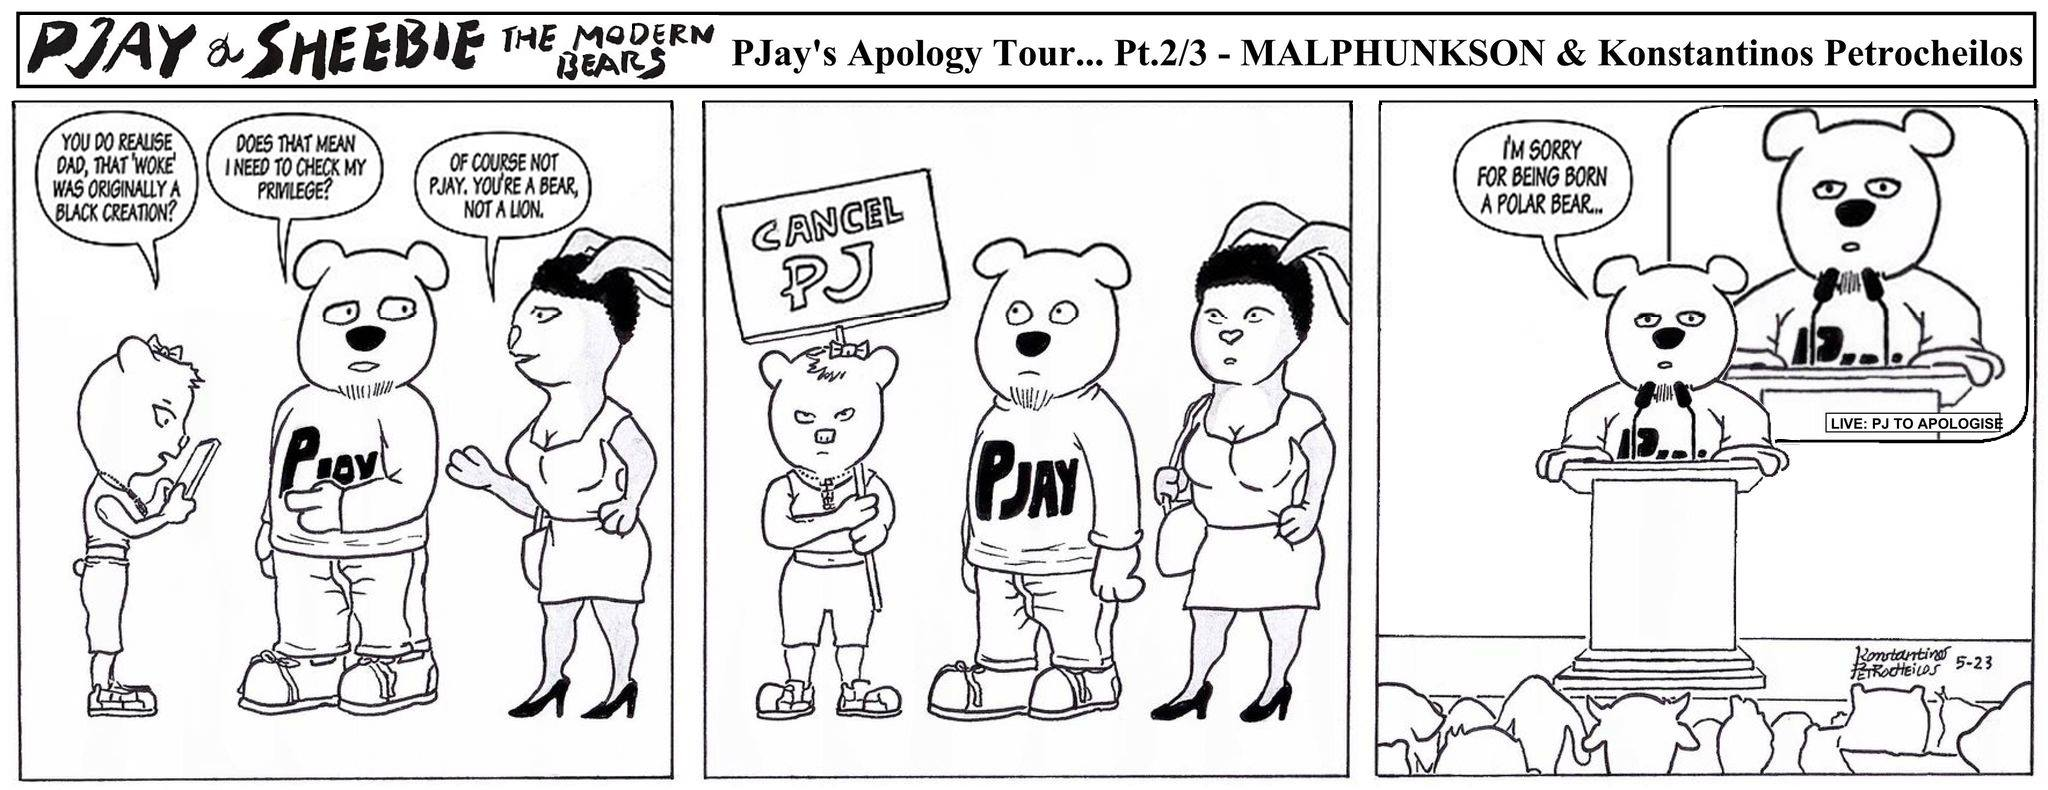 Pjay's Apology Tour